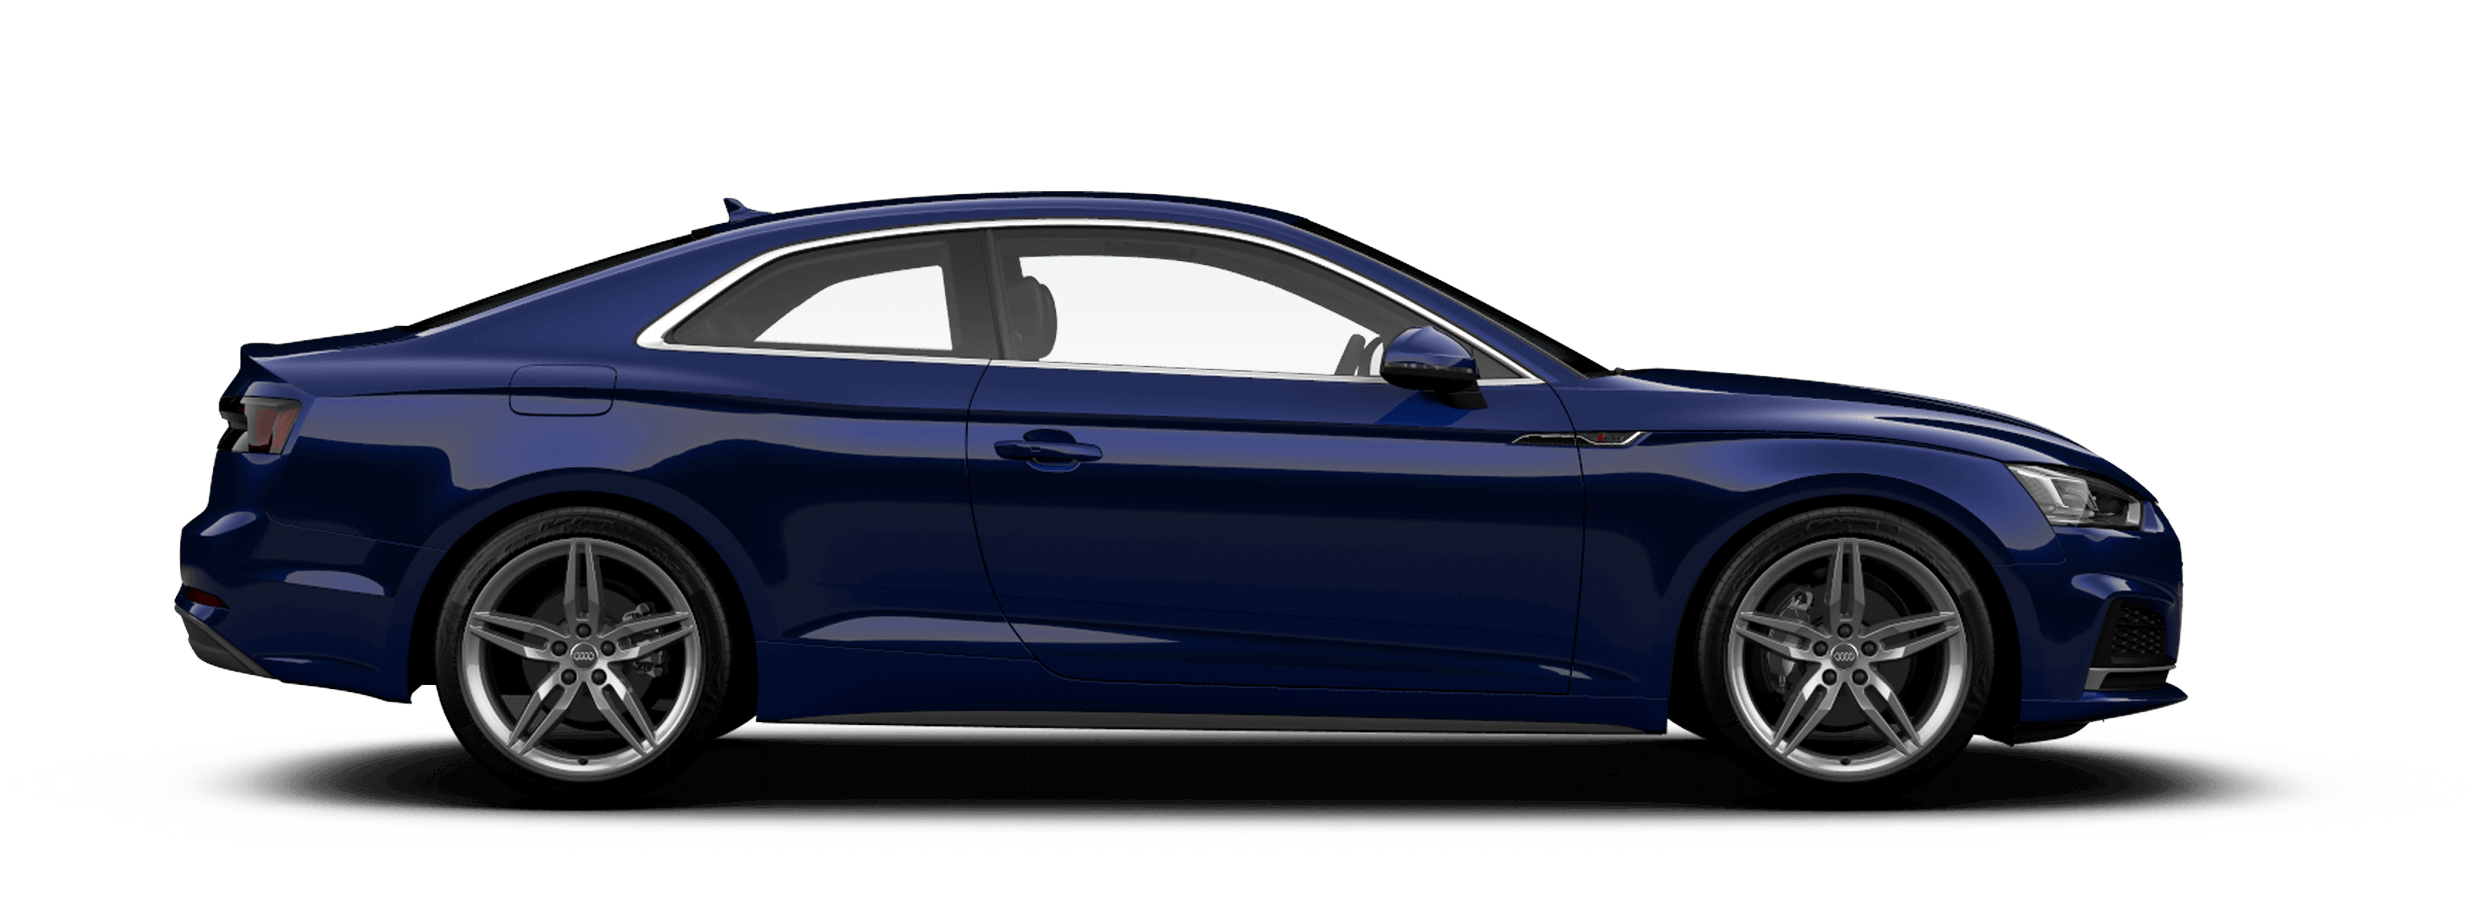 https://cogcms-images.azureedge.net/media/54477/rs-5-coupe.png